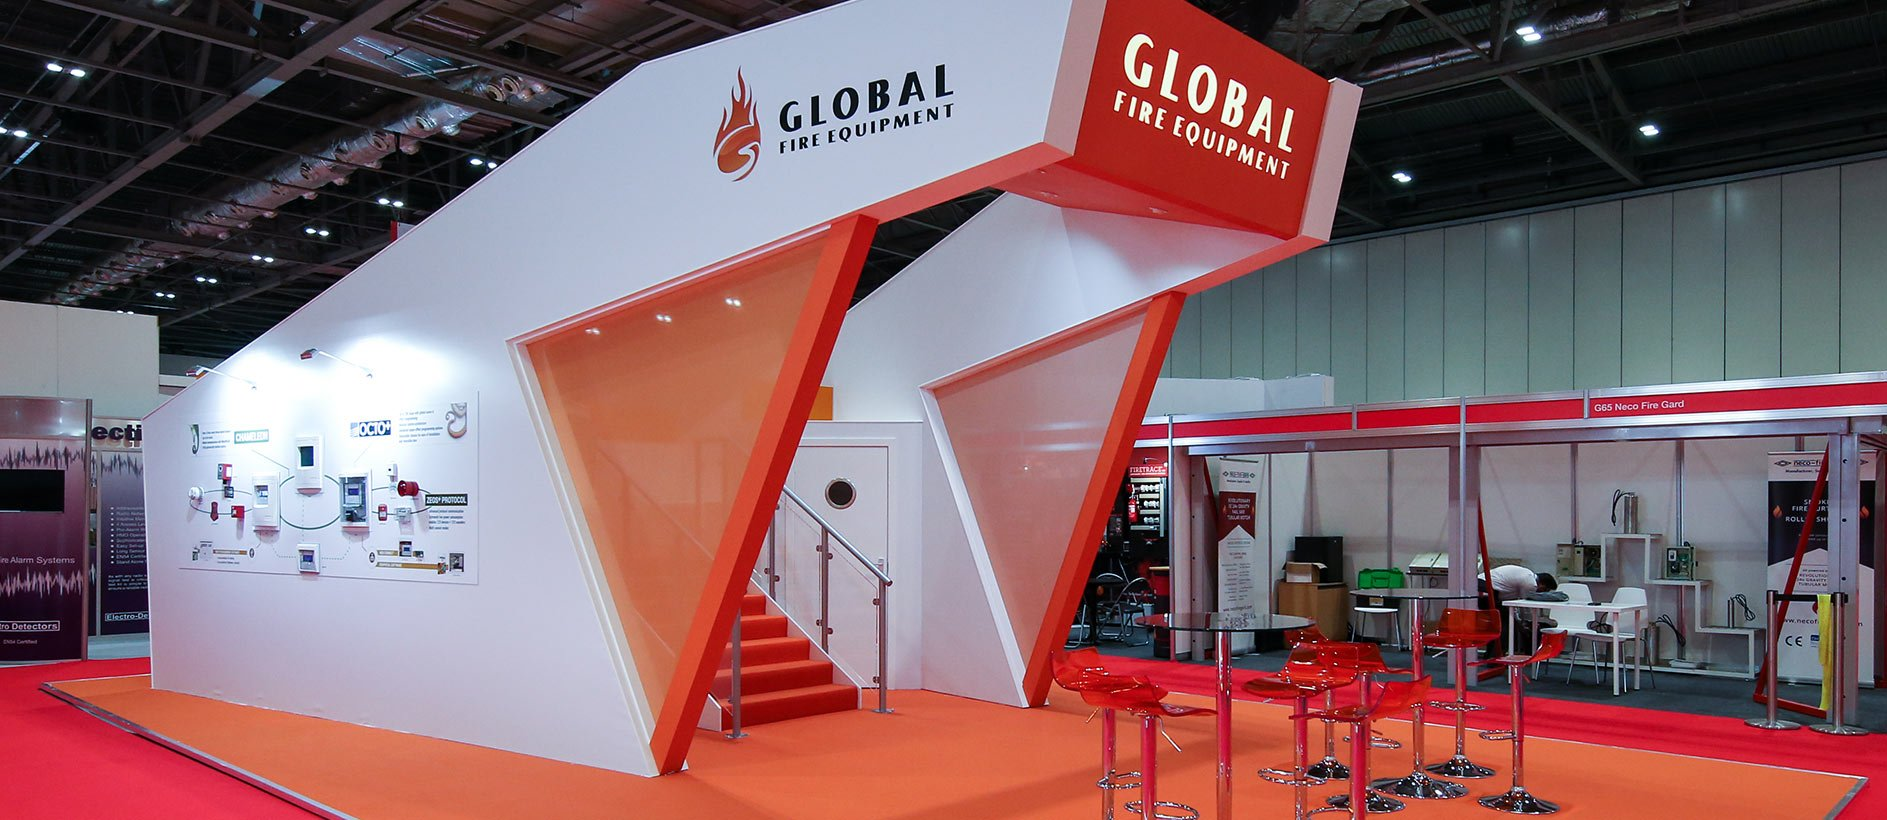 Bespoke exhibition stand for Global Fire Equipment